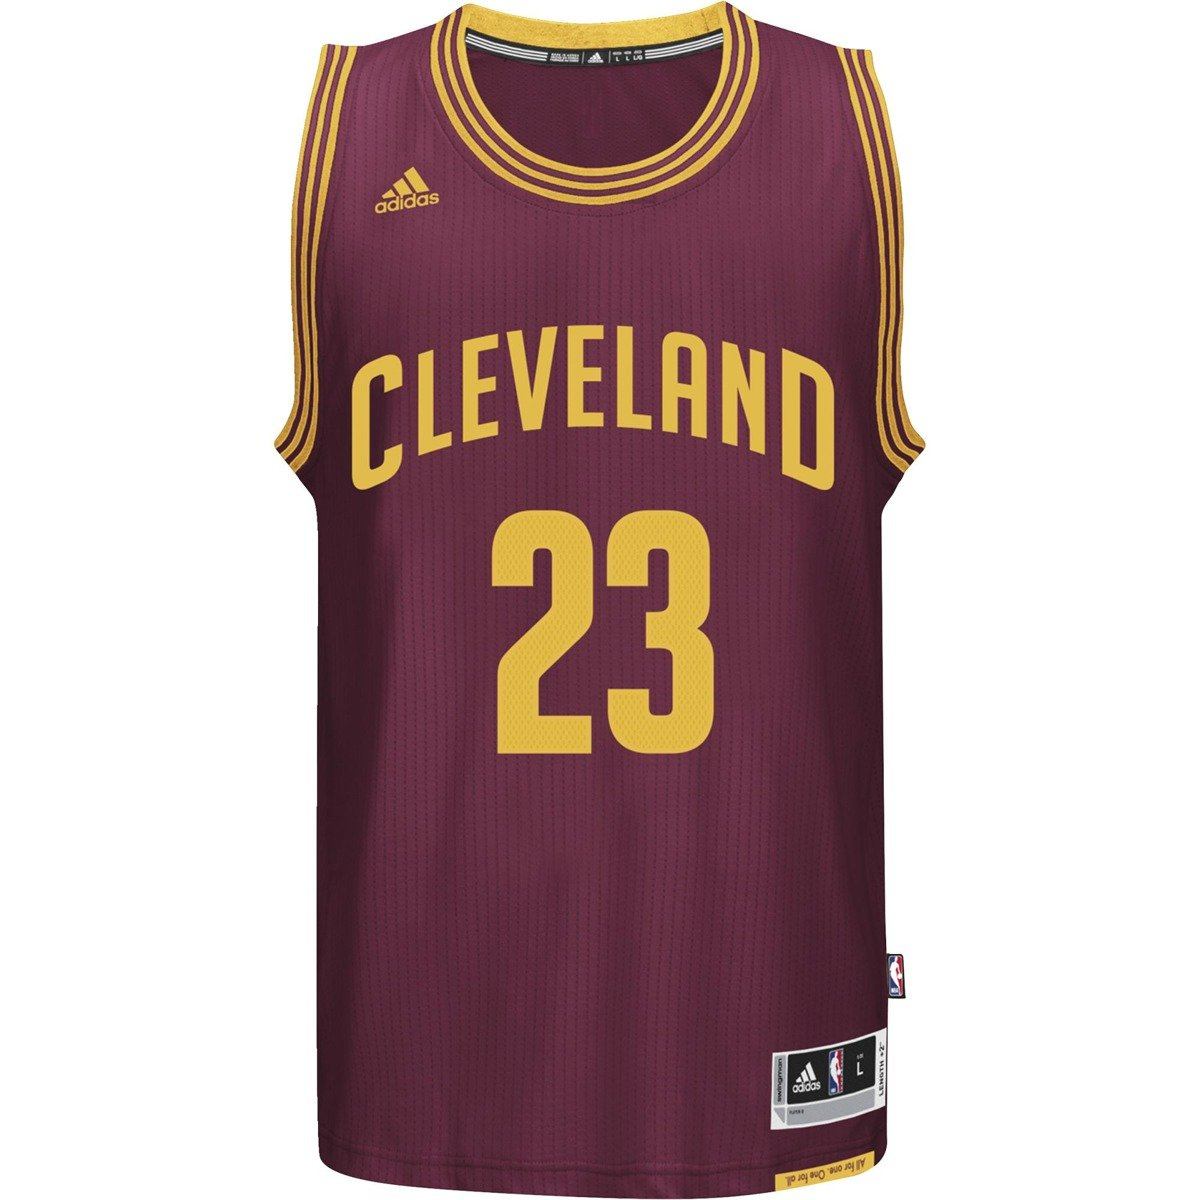 Hardwood Ventures is an independent basketball shop, based in the UK. We stock basketball related brands like Nike, Jordan, Adidas, Stance and Mitchell & Ness.